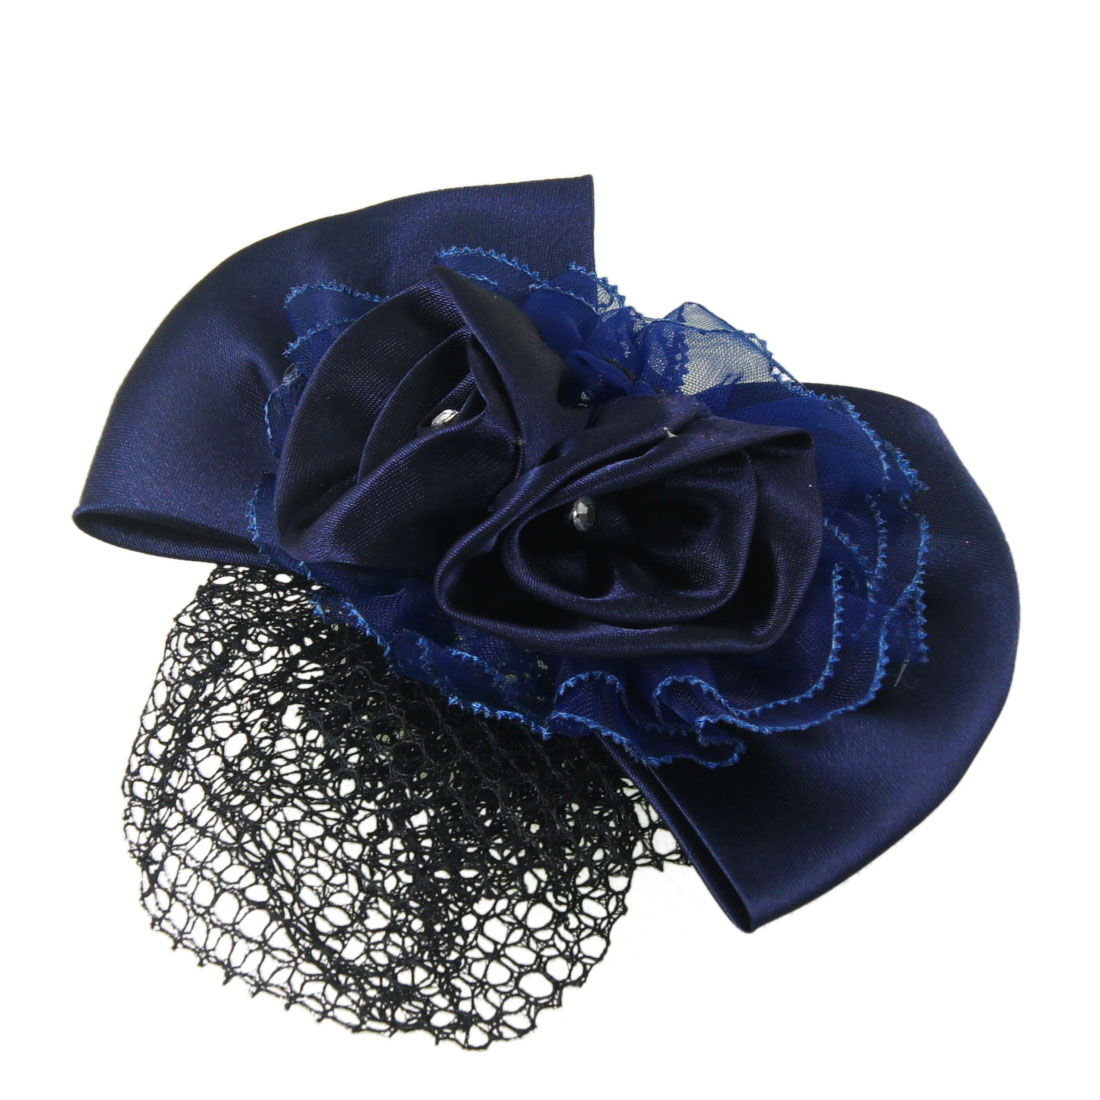 Ladies Navy Blue Flower Bowknot Accent Snood Net Hairclip